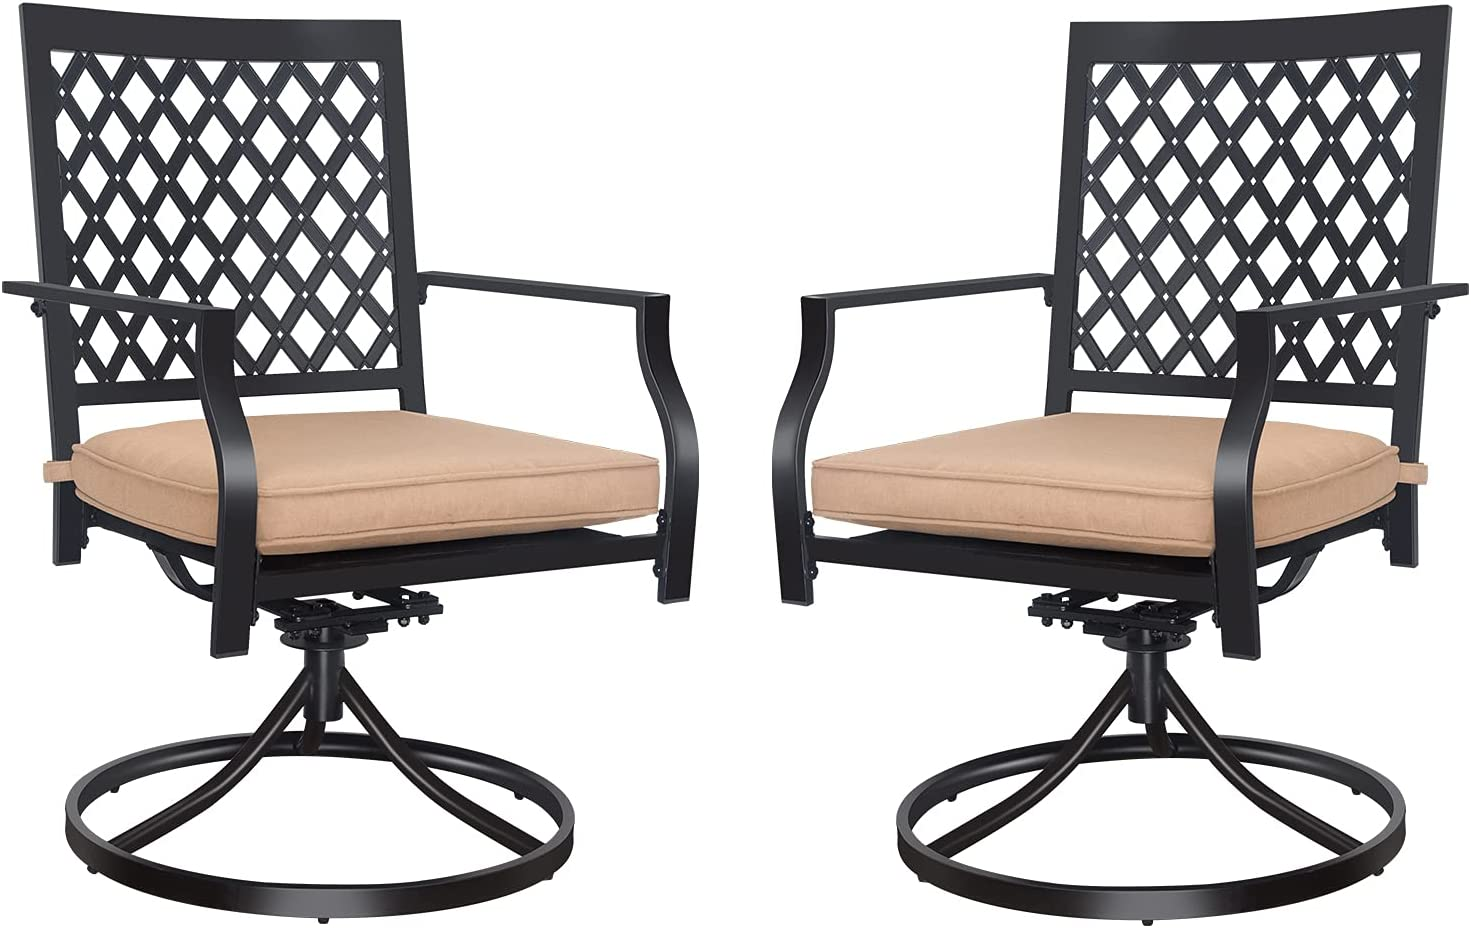 Patio Dining Chairs Time sale 2 Pcs MEOOEM Outdoor Swivel Clearance SALE Limited time Rocker Ch Metal